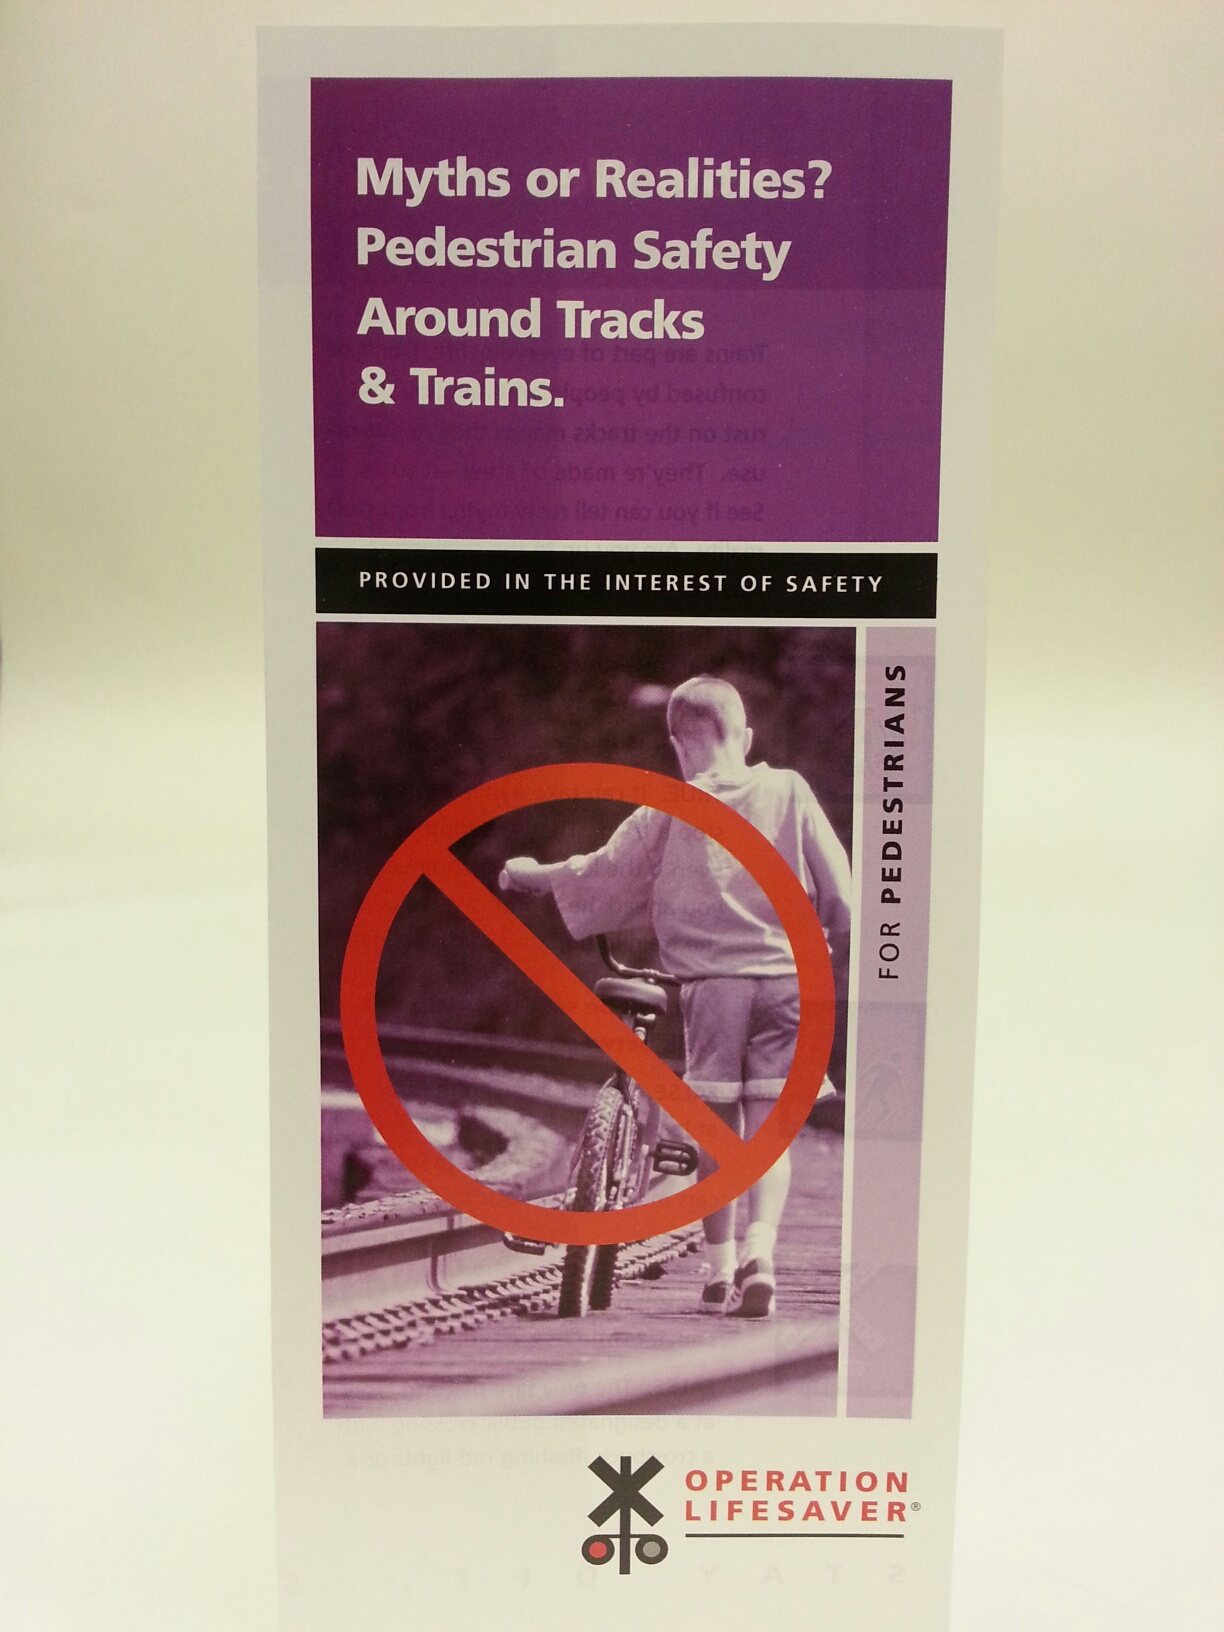 Myths or Realities for Pedestrians